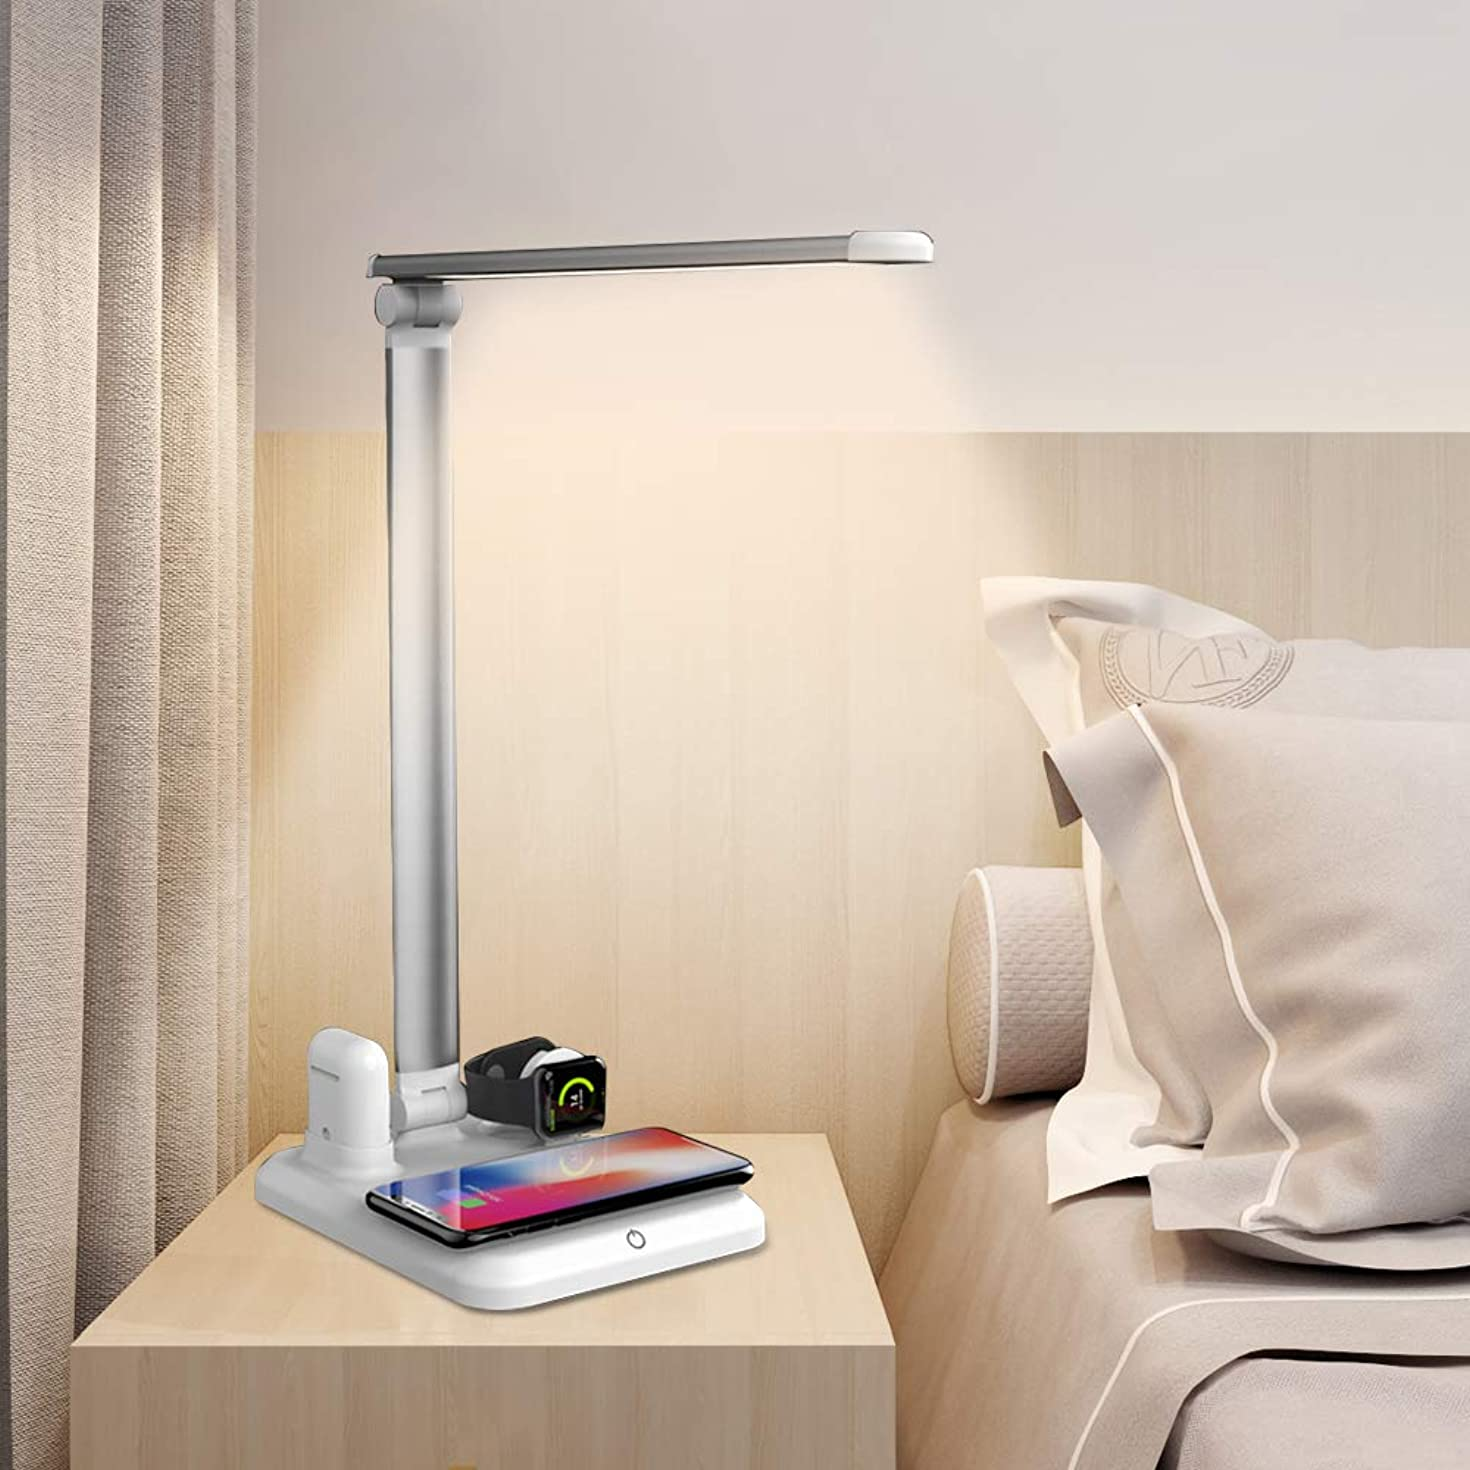 Boruit 4 in 1 Wireless Charger Table lamp Sleep Light Desk lamp has 3 Modes with USB Charging Port can Charge for iPhone Xs Max/XR/X/8/7 Plus/airpod/iwatch/Samsung Galaxy S10+/S9+/S8/S7 and so on